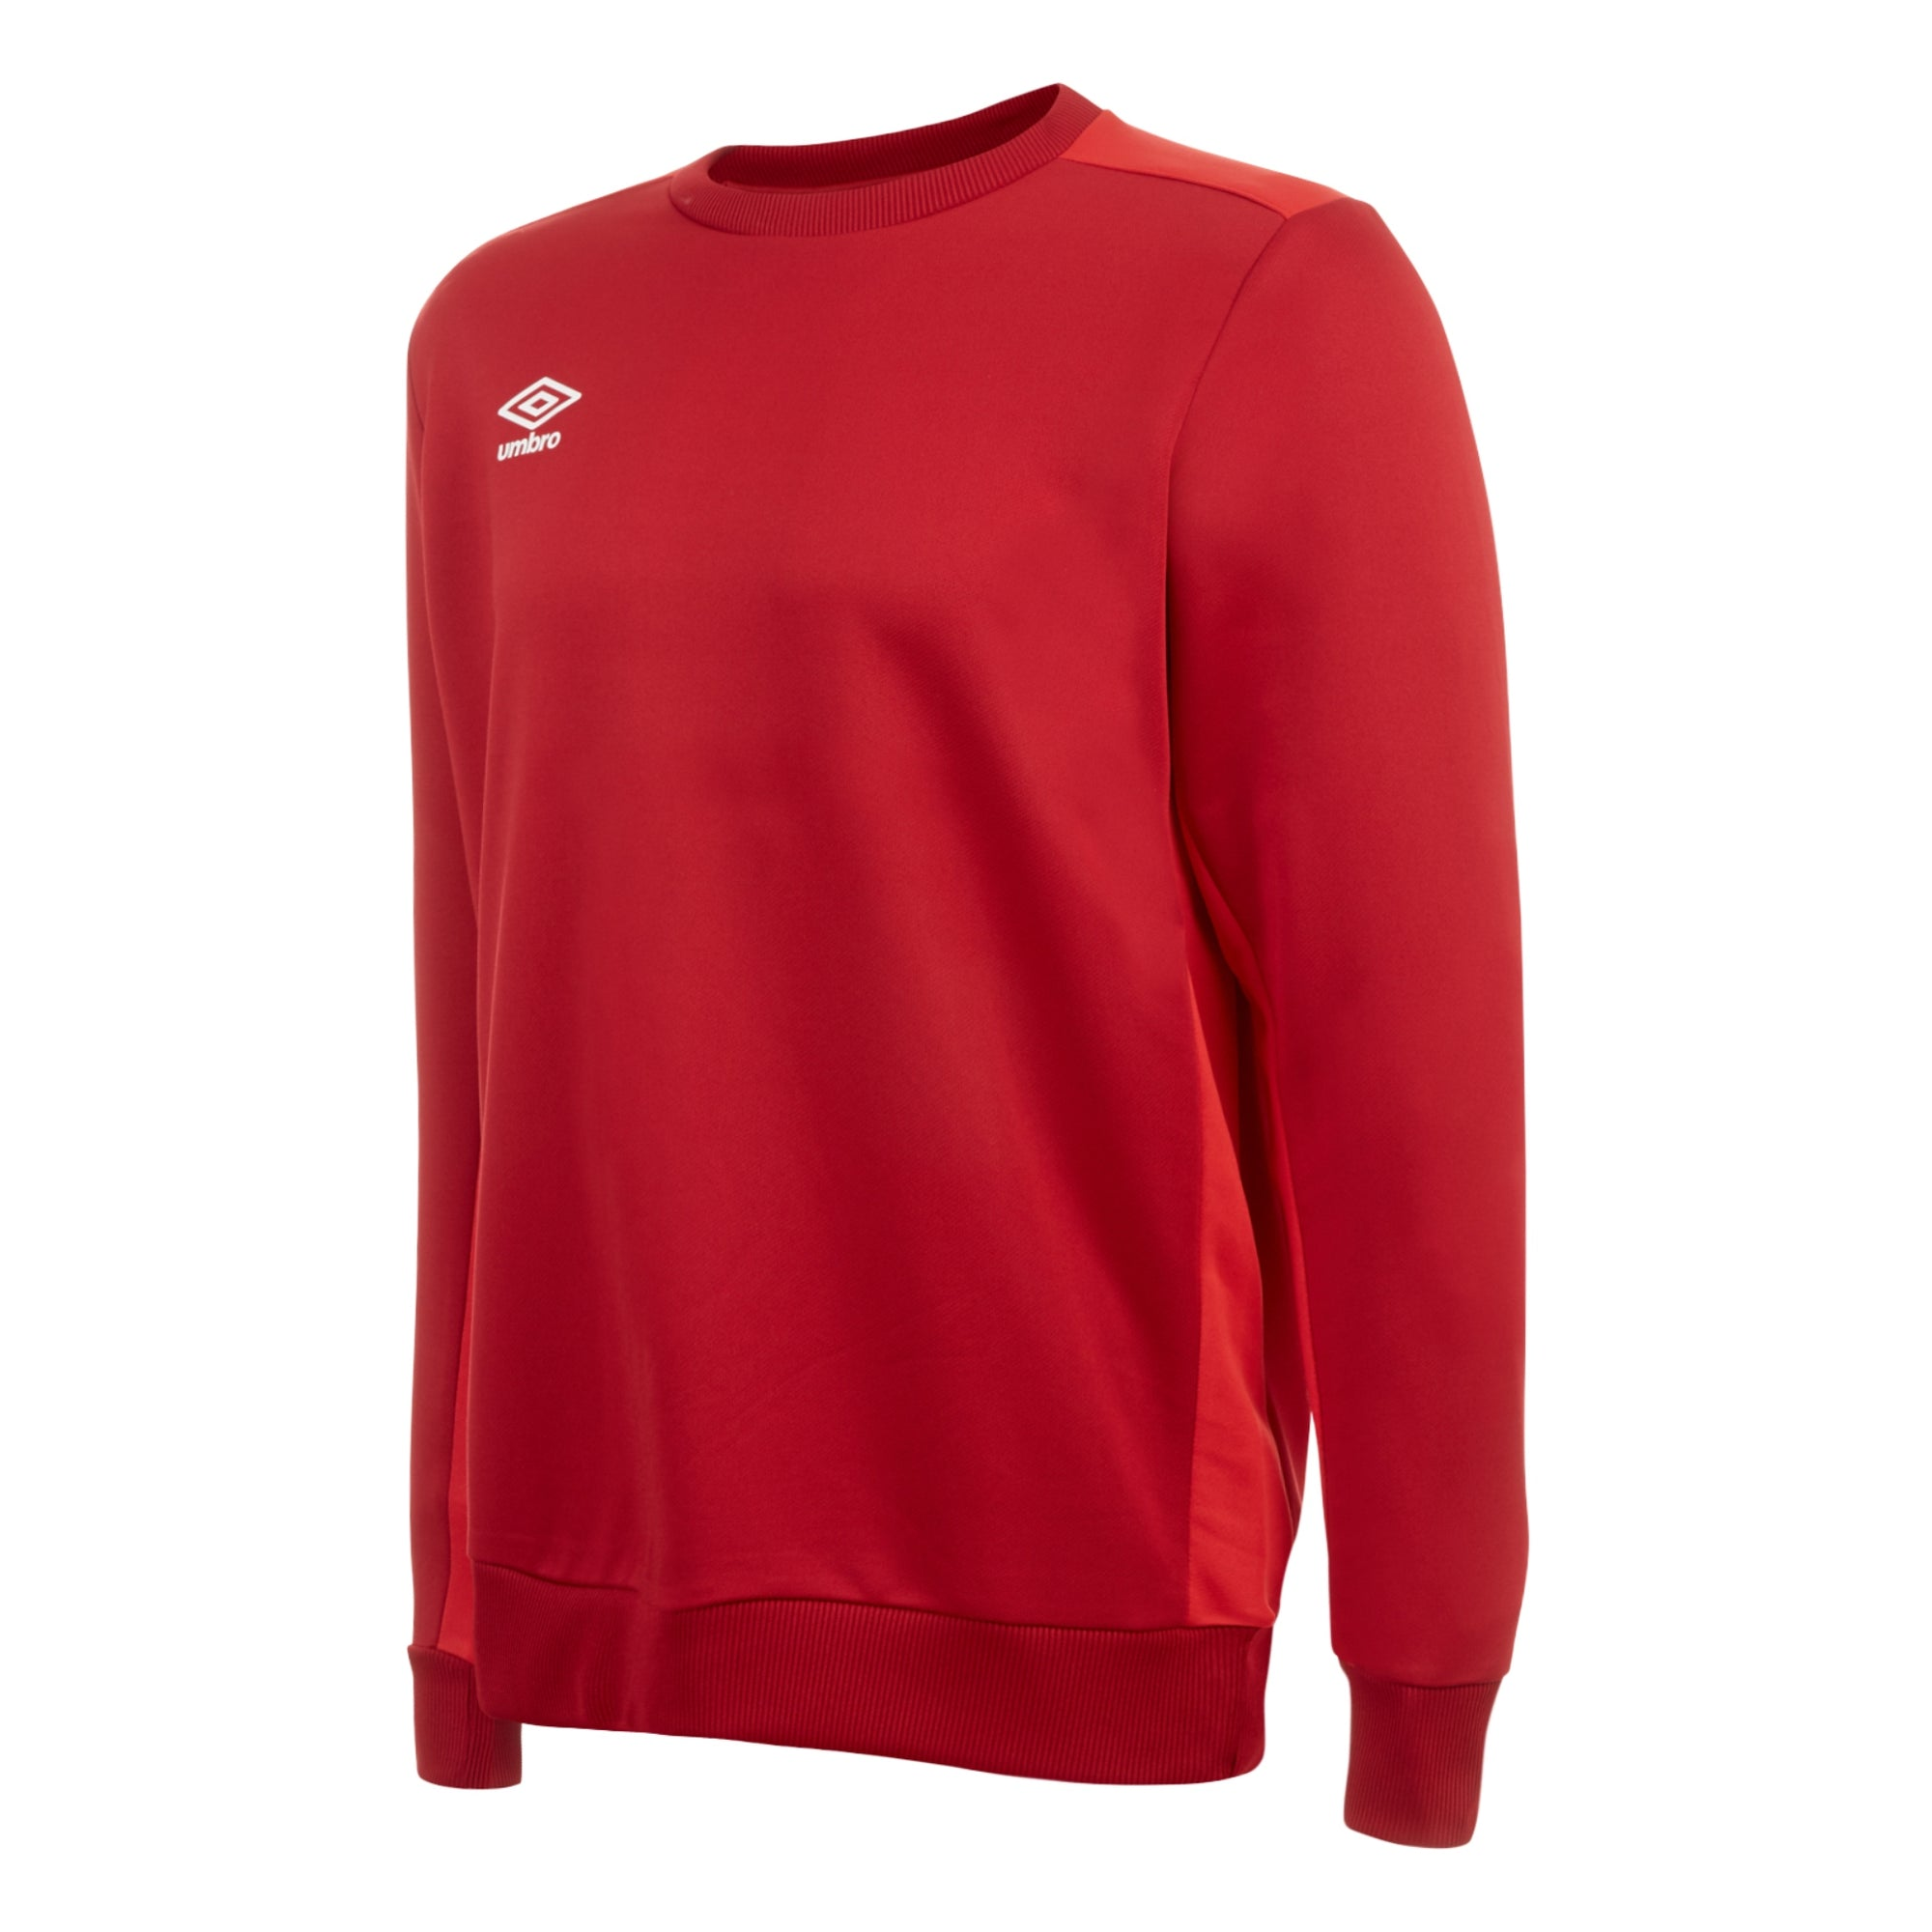 Umbro Training Poly Fleece - Vermillion/Jester Red/White